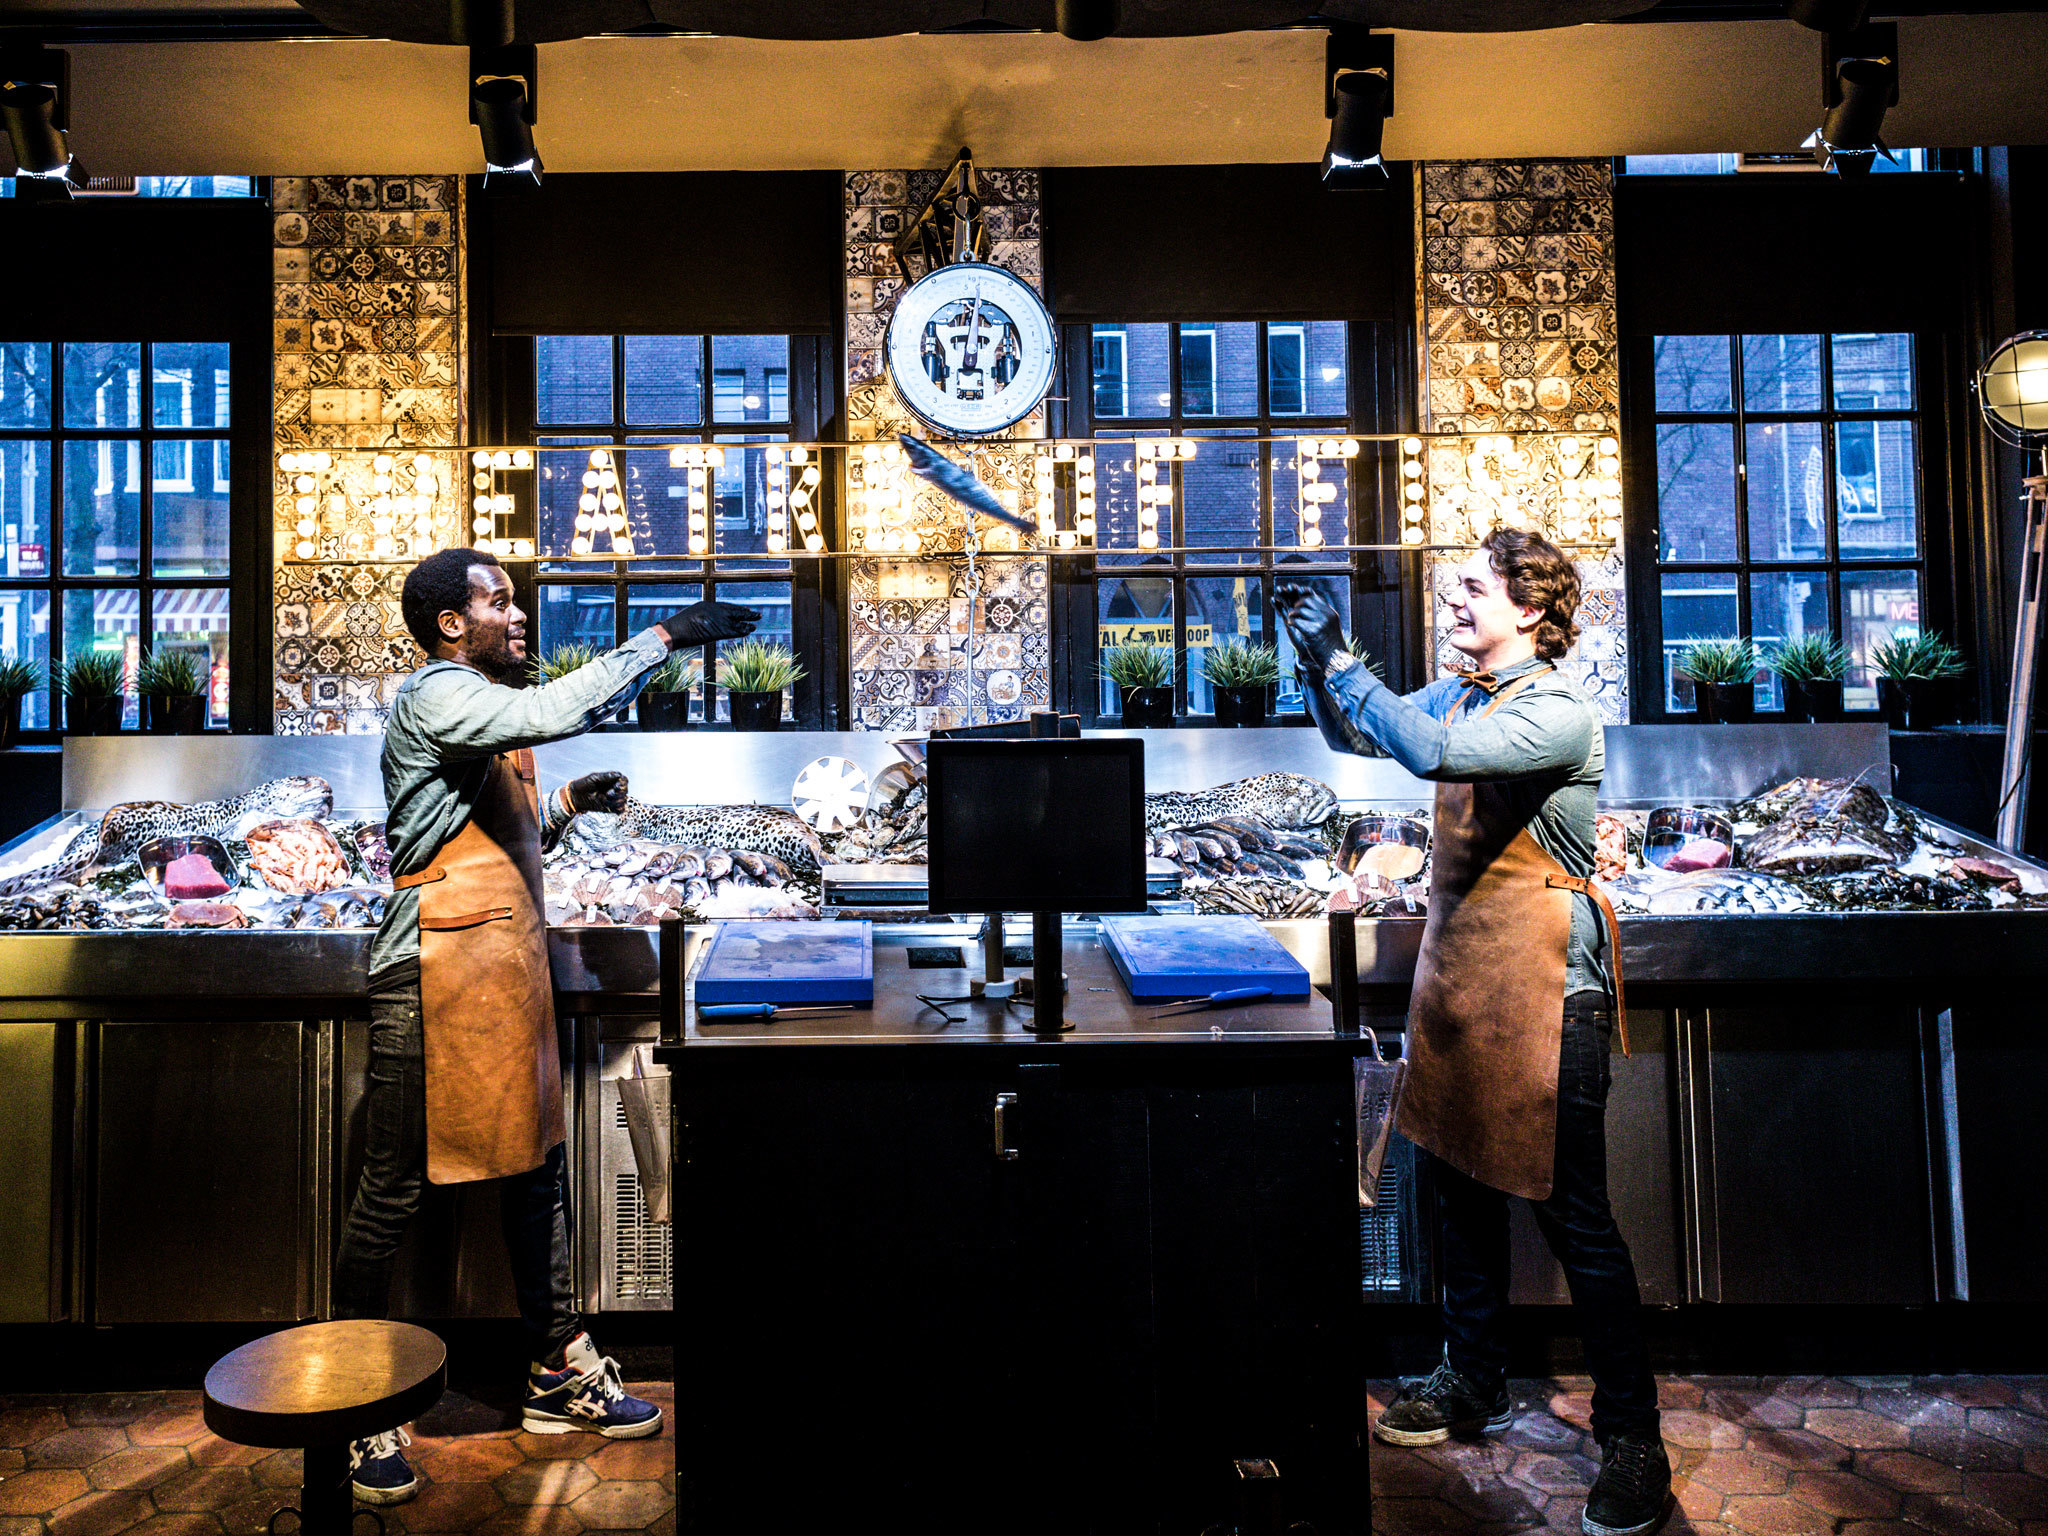 Staff throw a fish at Pesca restaurant in Amsterdam